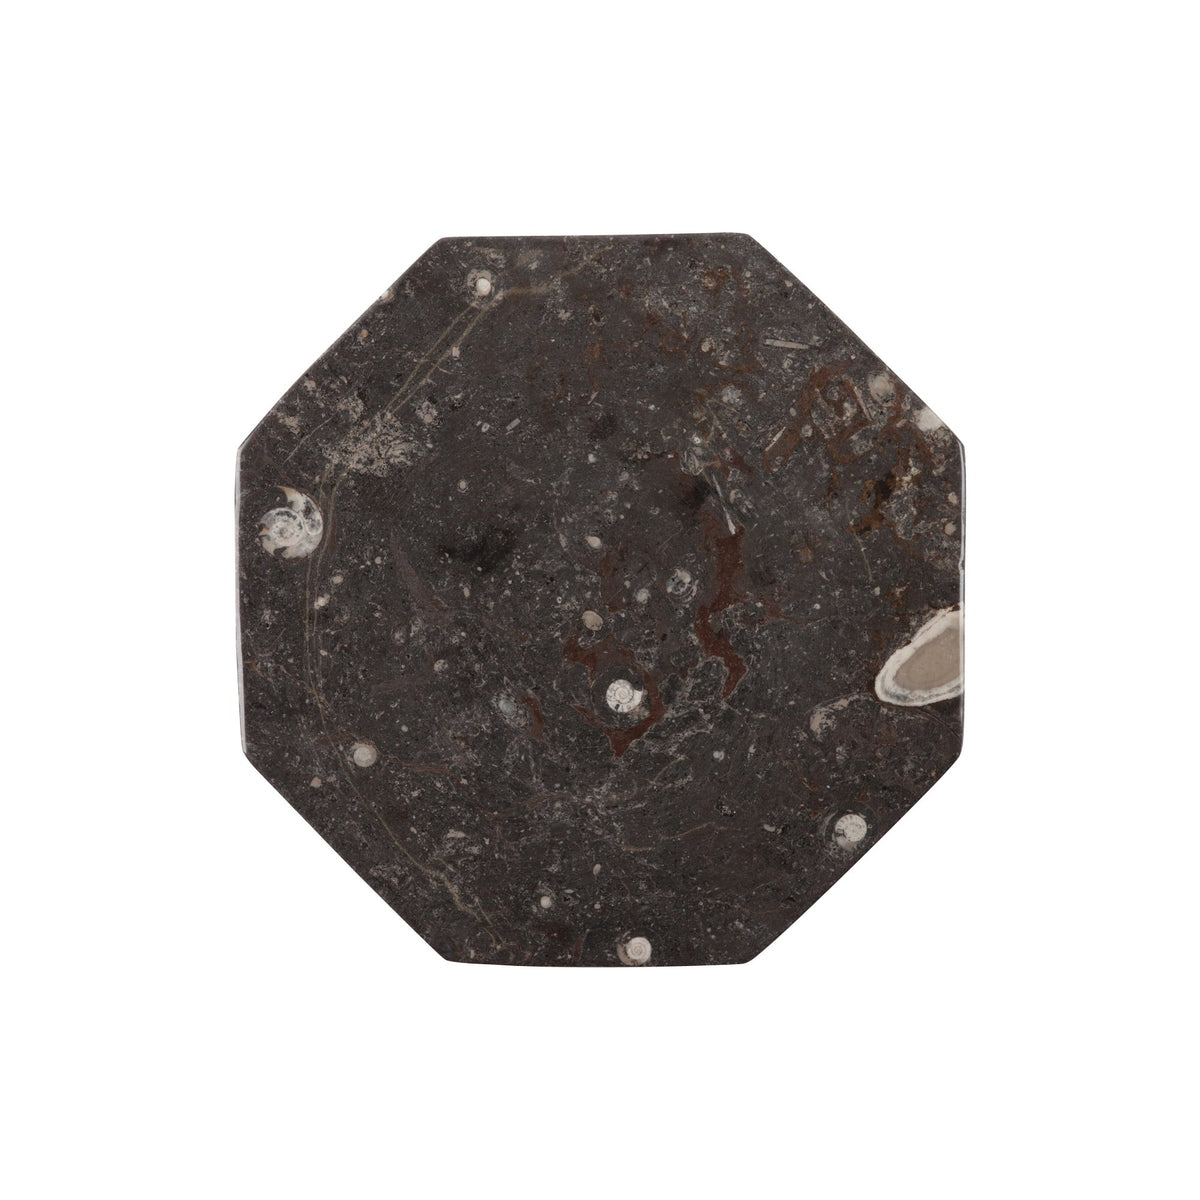 Octagonal Black Fossil Plate